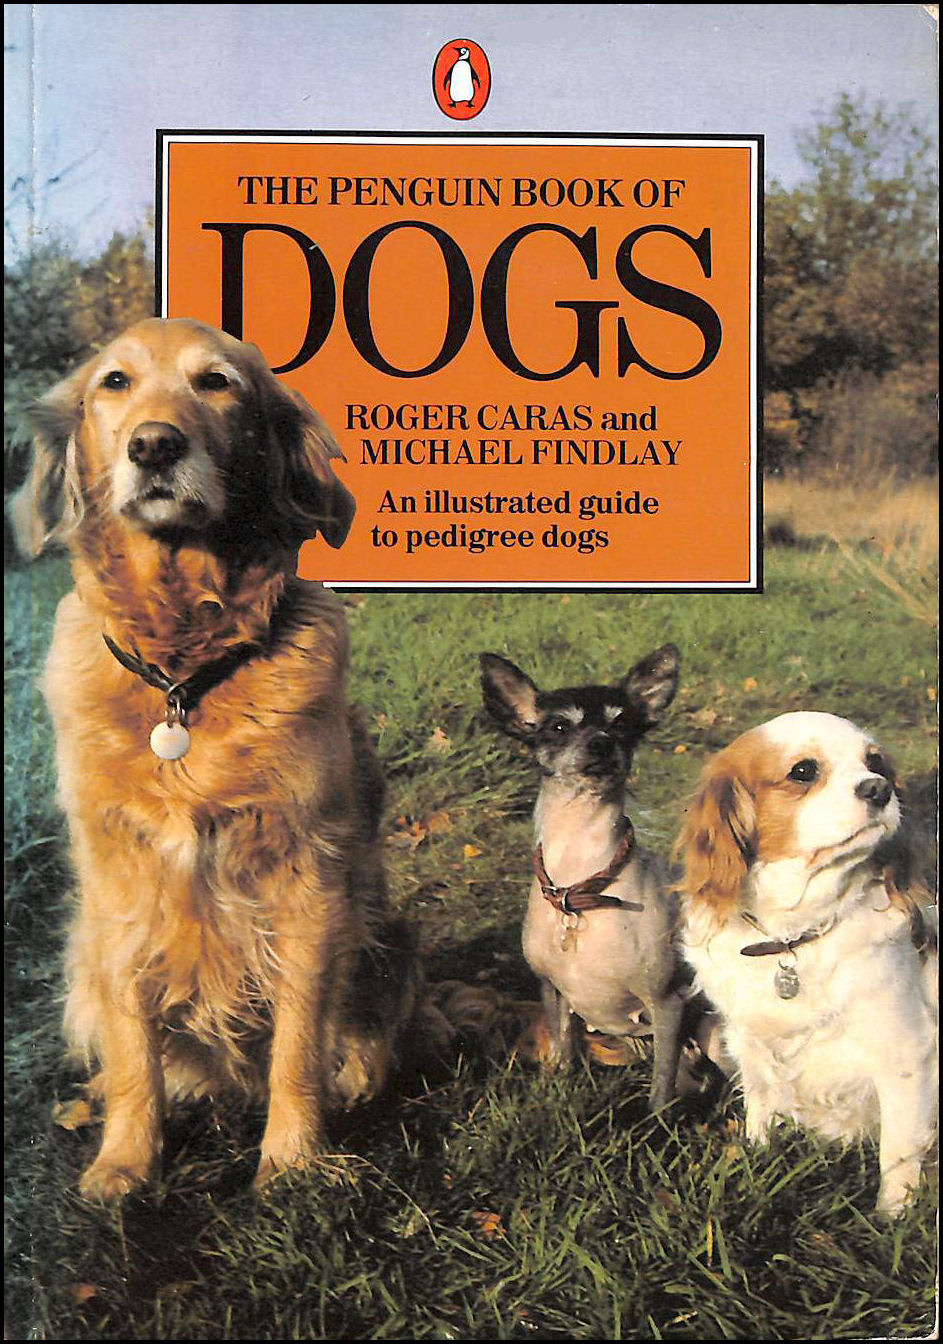 The Penguin Book of Dogs (Penguin Handbooks), Caras, Roger A.; Findlay, Michael